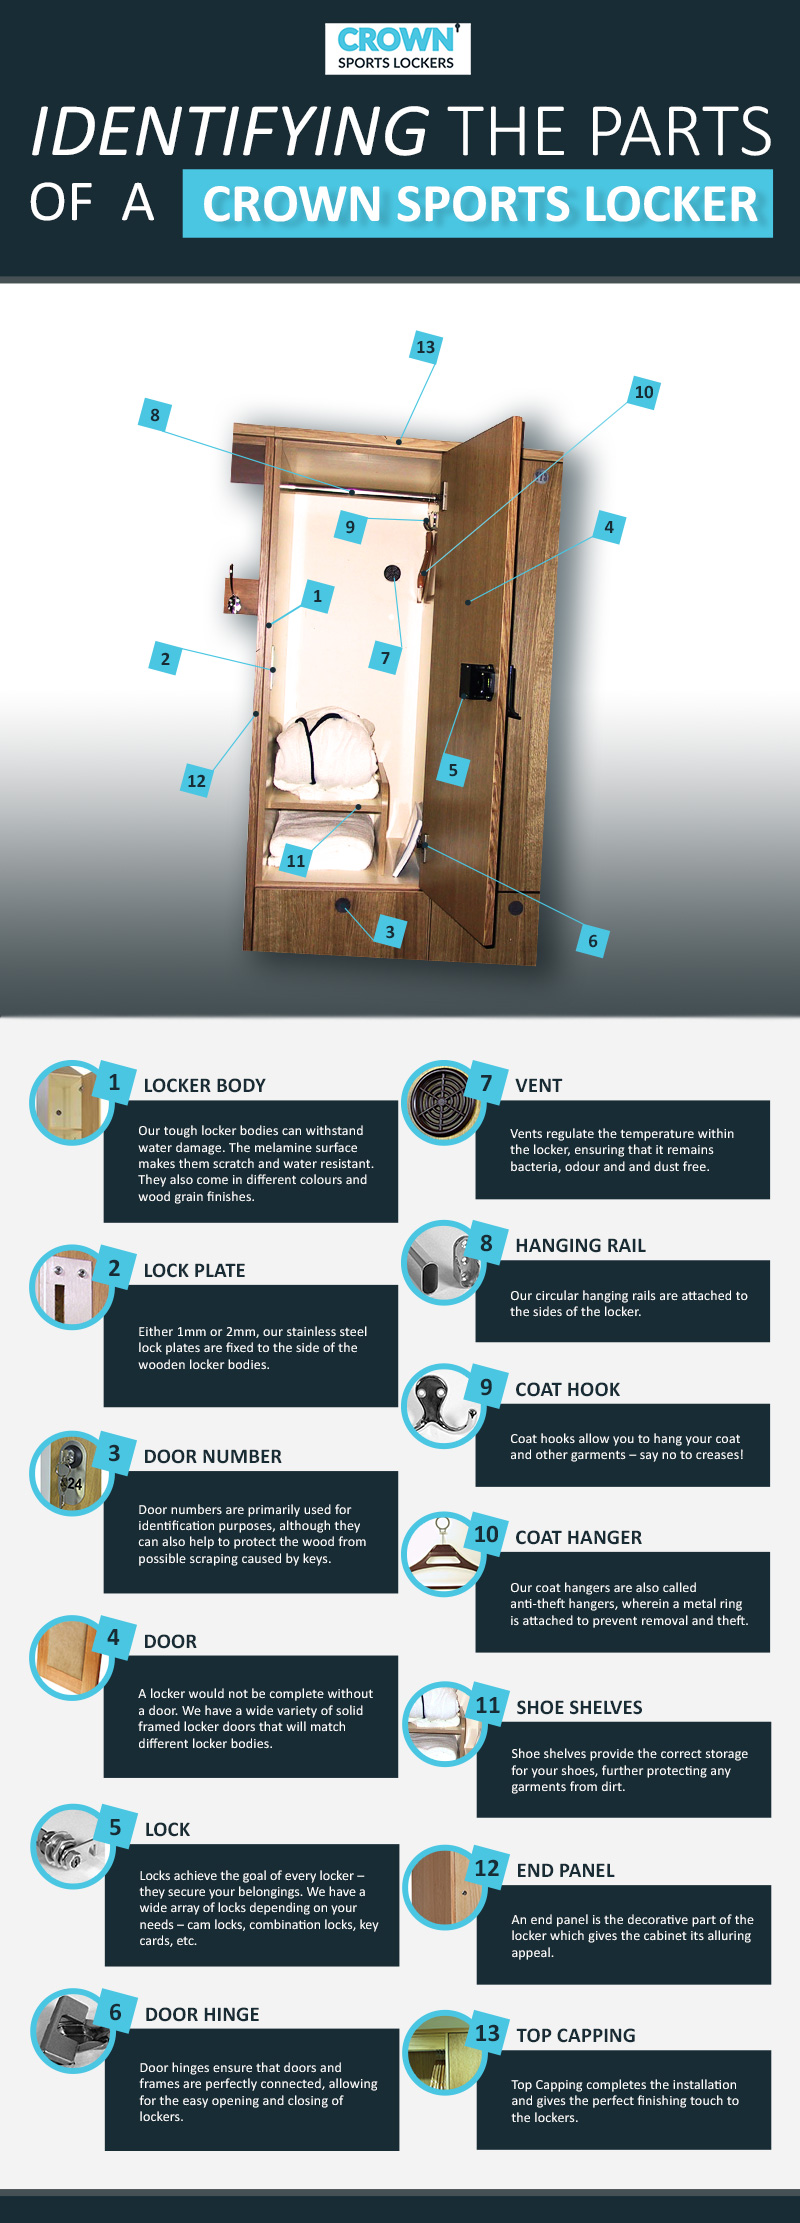 parts of a crown sports wooden locker